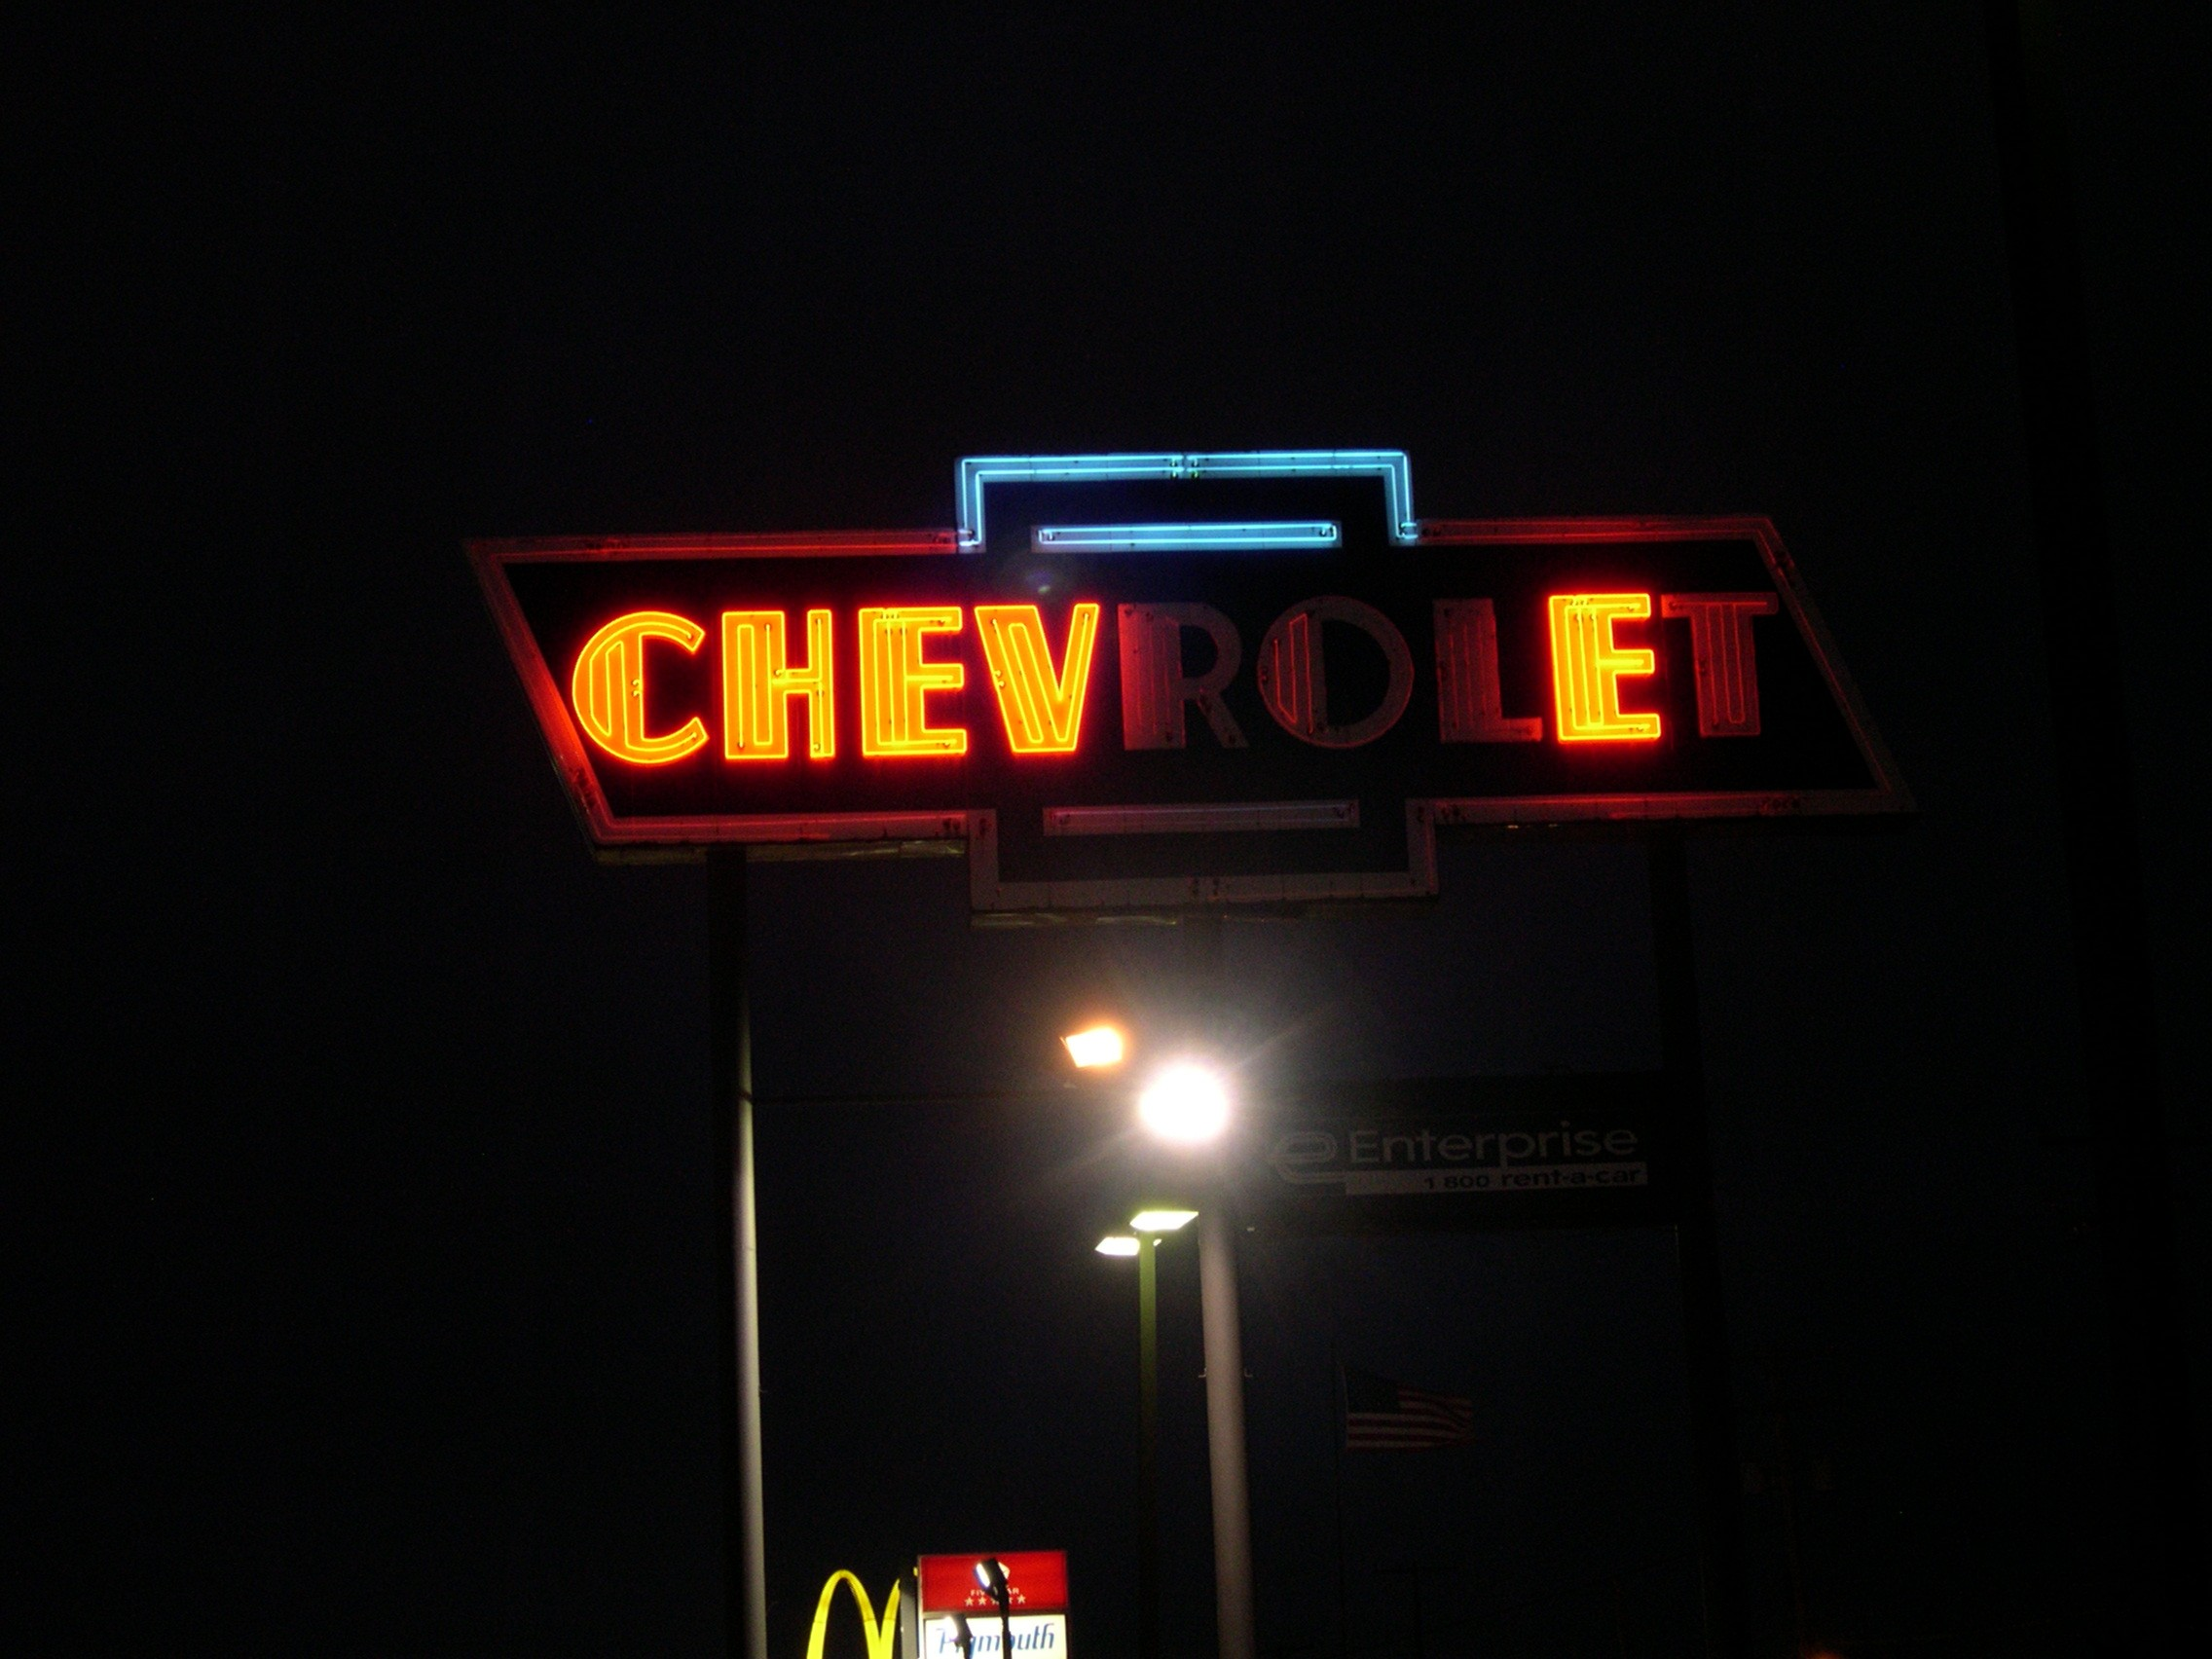 Gage Chevrolet night before.jpg